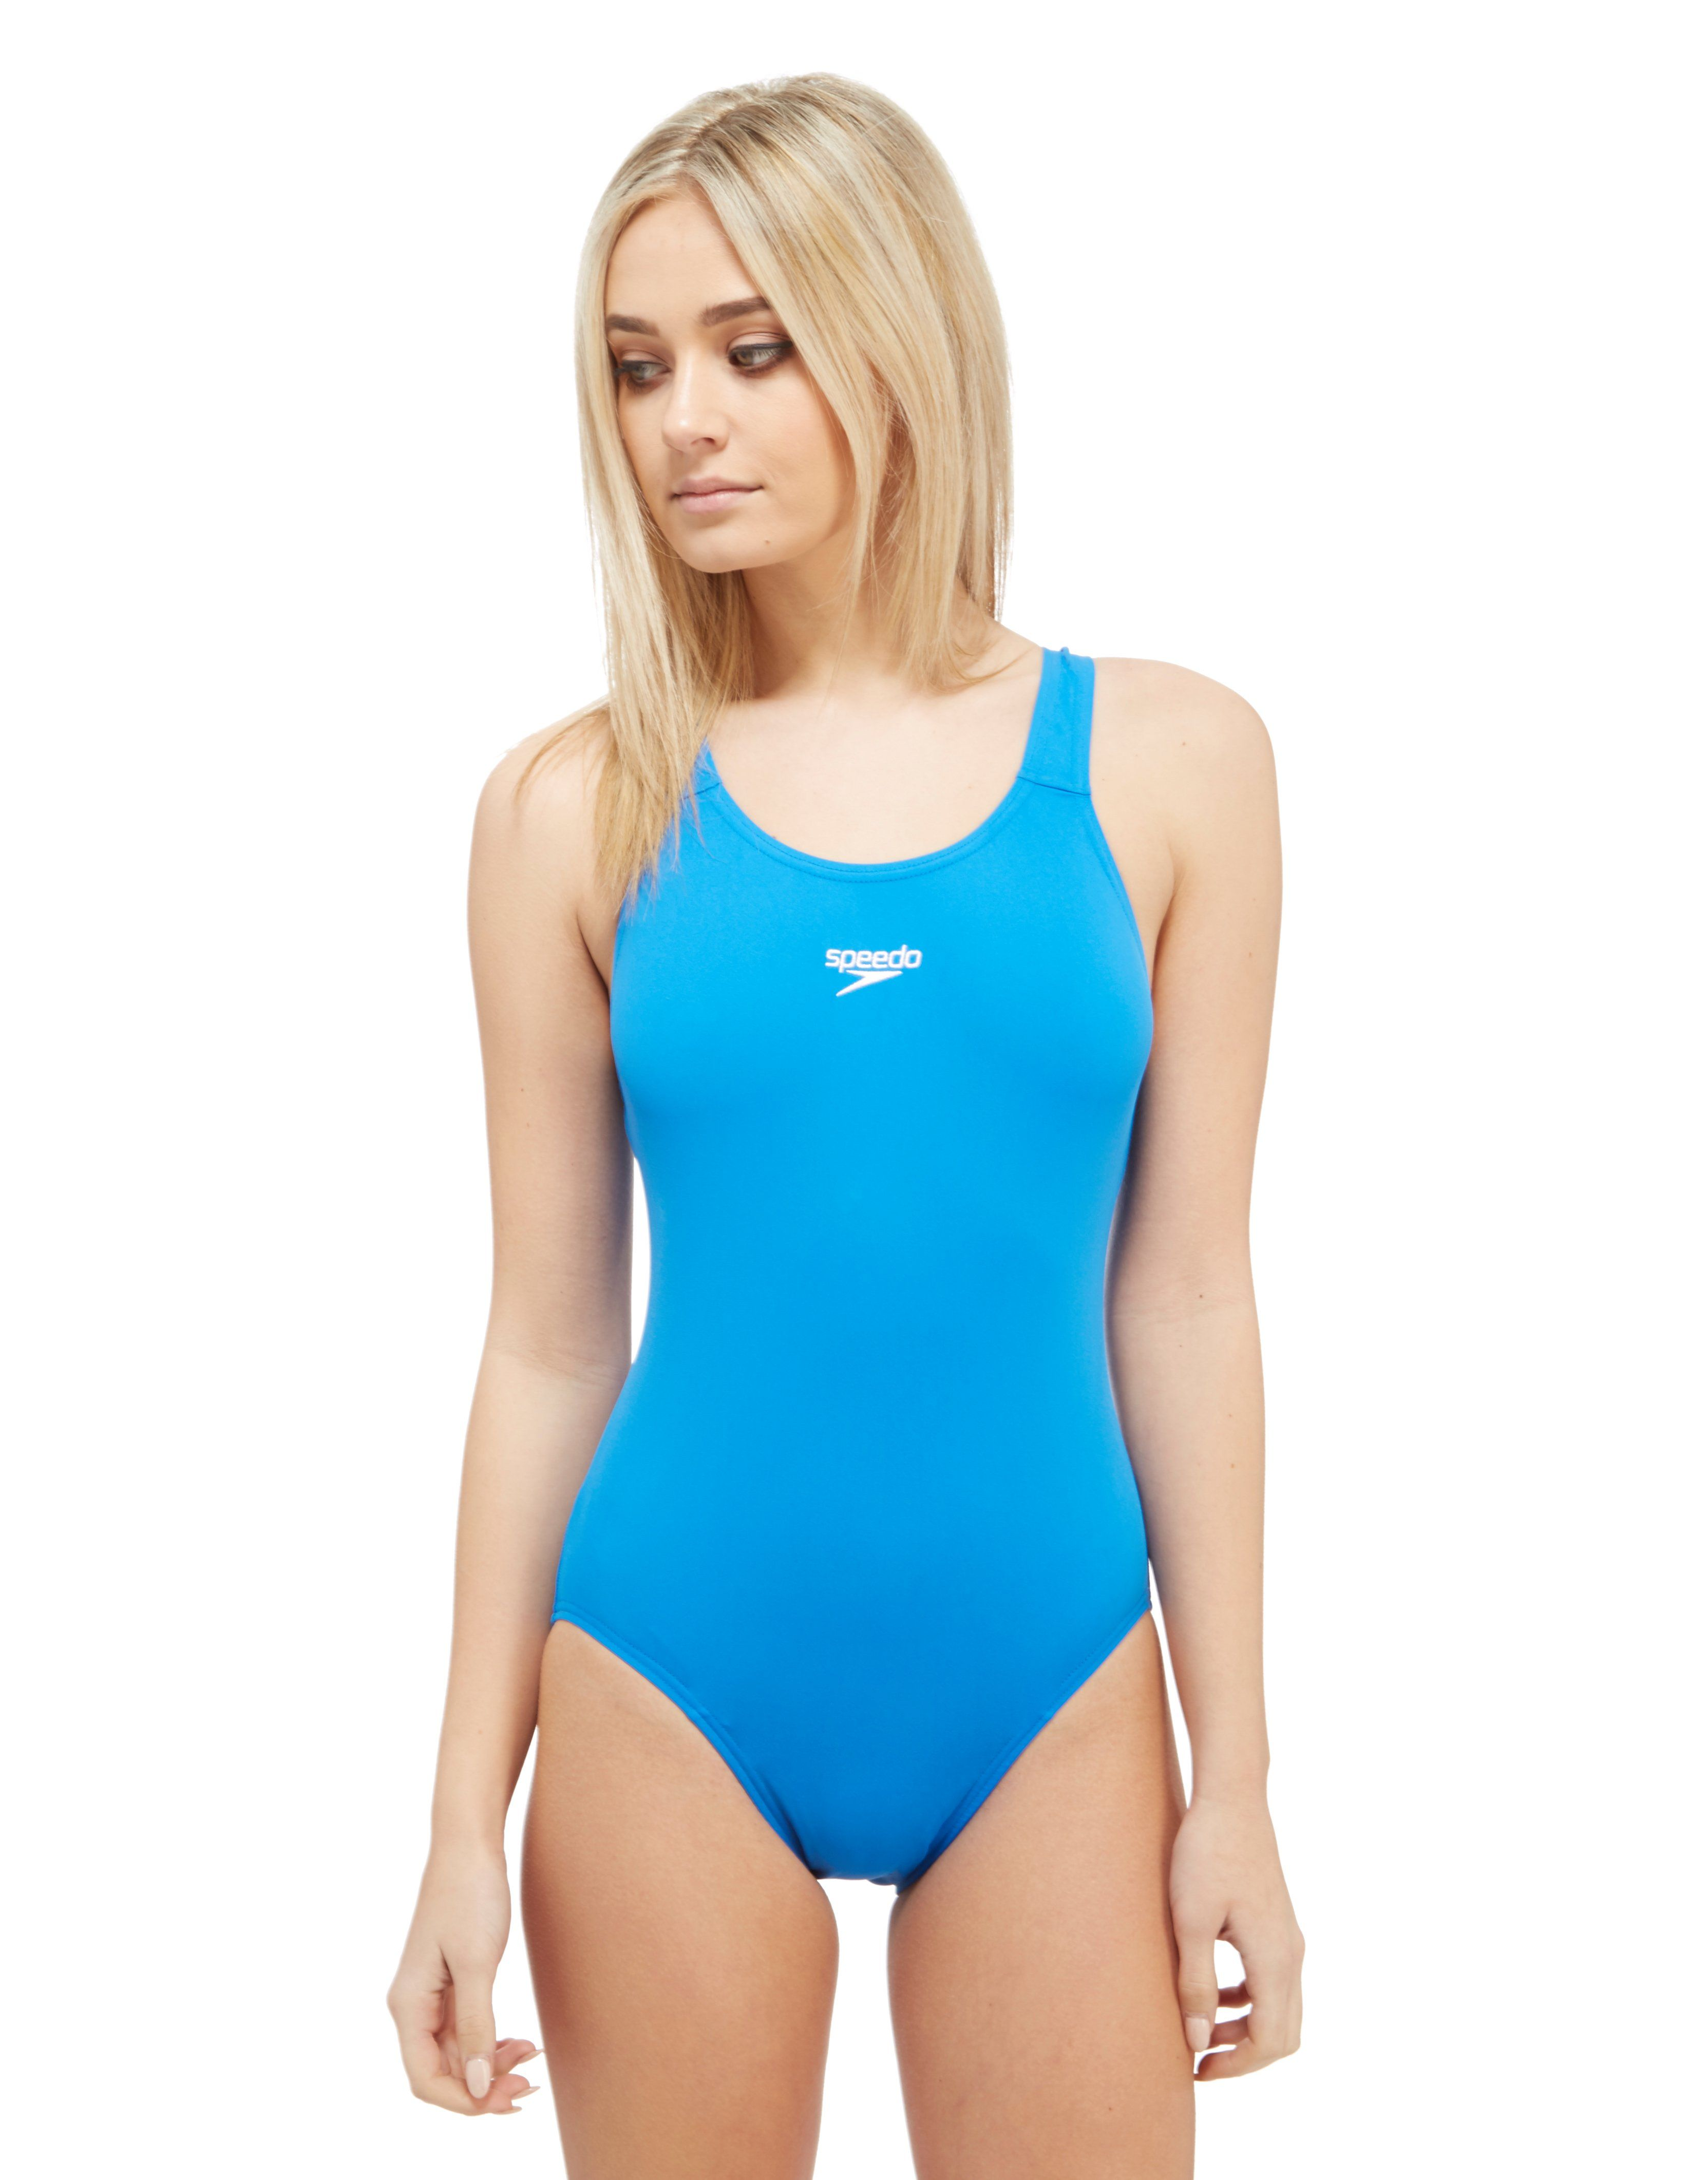 Speedo Endurance + Medalist Swimsuit